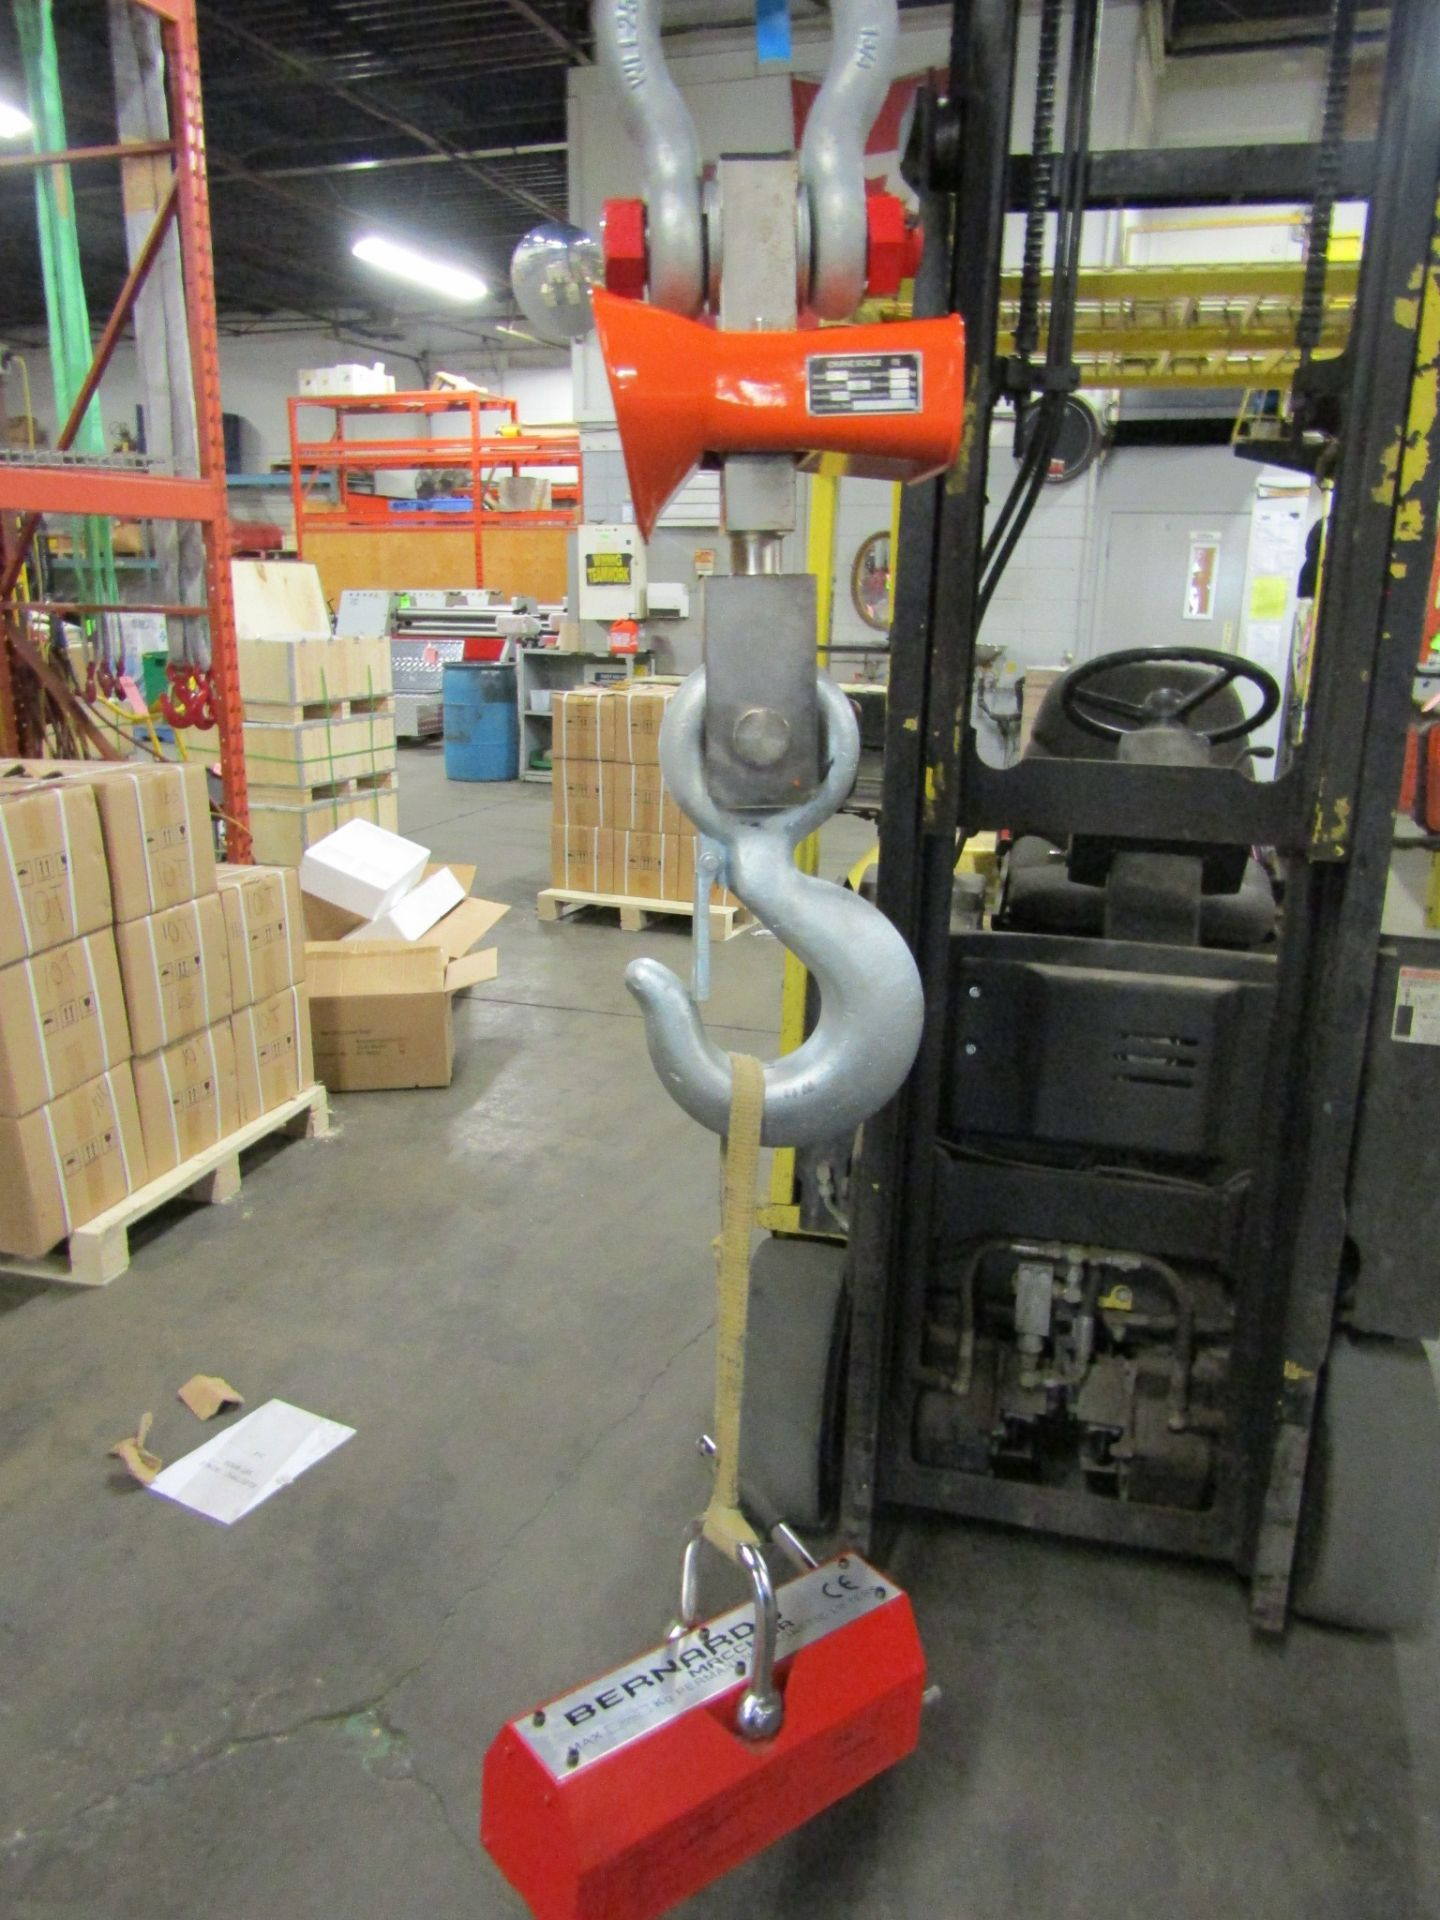 Hanging MINT Digital Crane Scale 40,000lbs 20 ton Capacity - complete with remote control and - Image 3 of 3